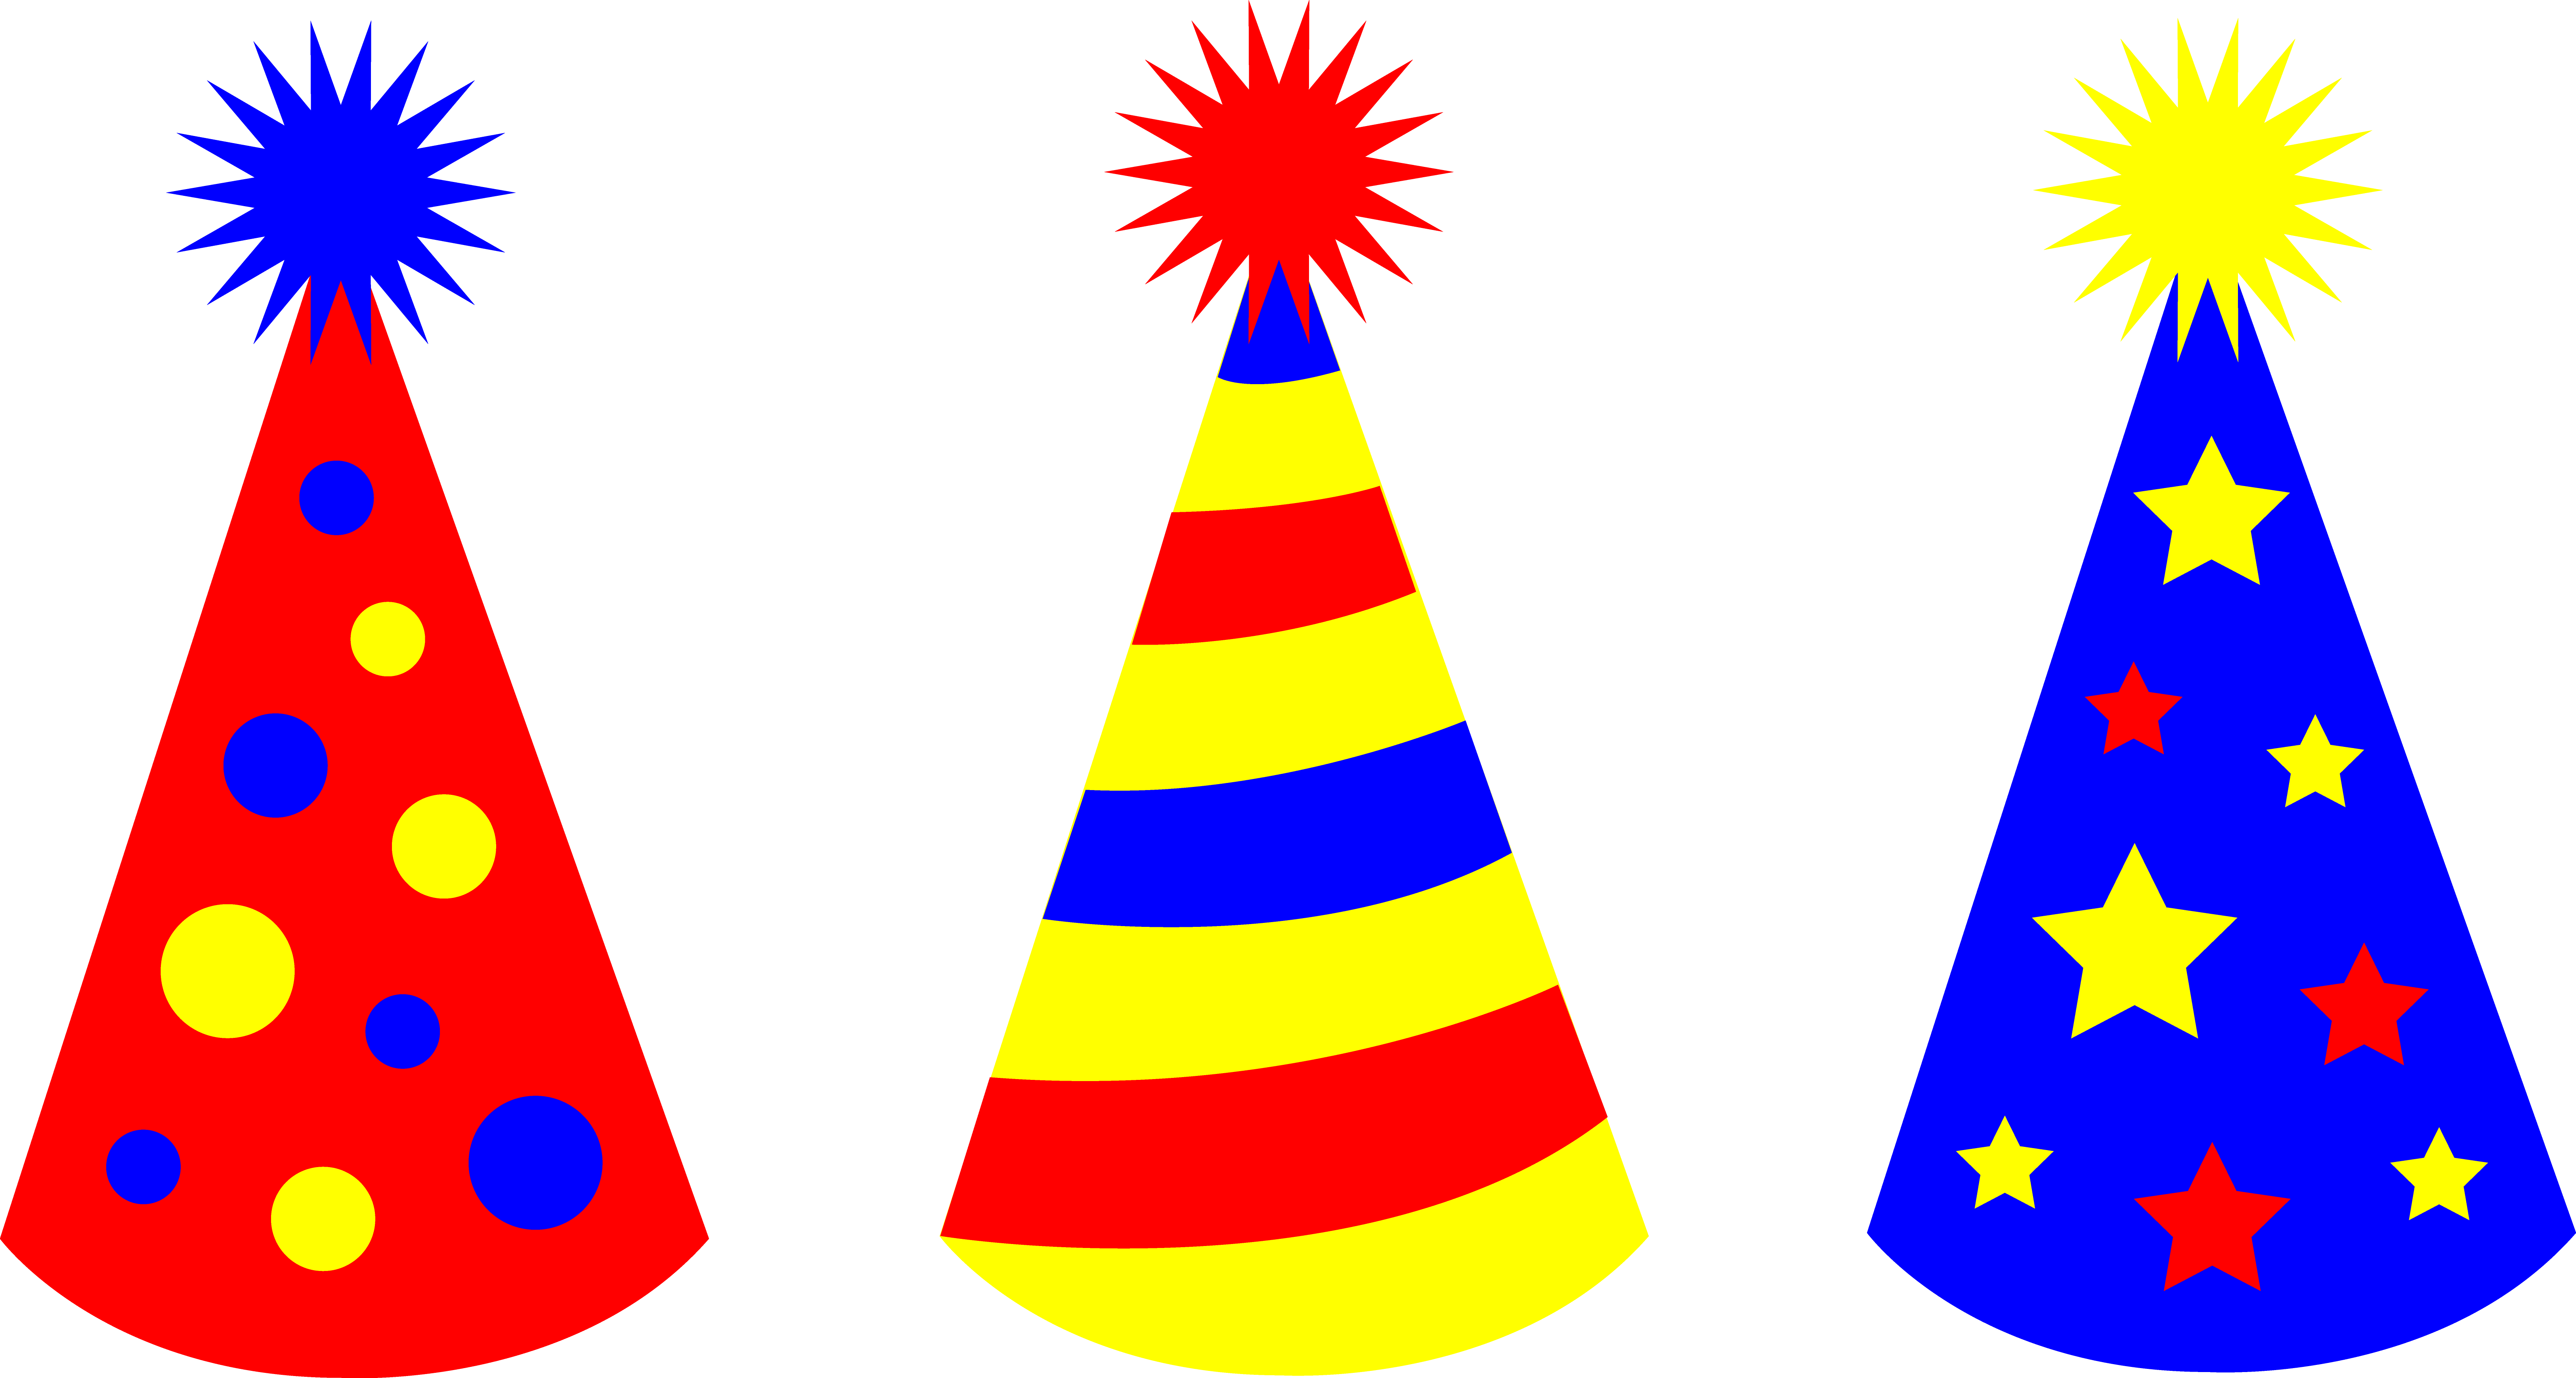 Party Hat Clip Art - clipartall .-Party Hat Clip Art - clipartall .-15